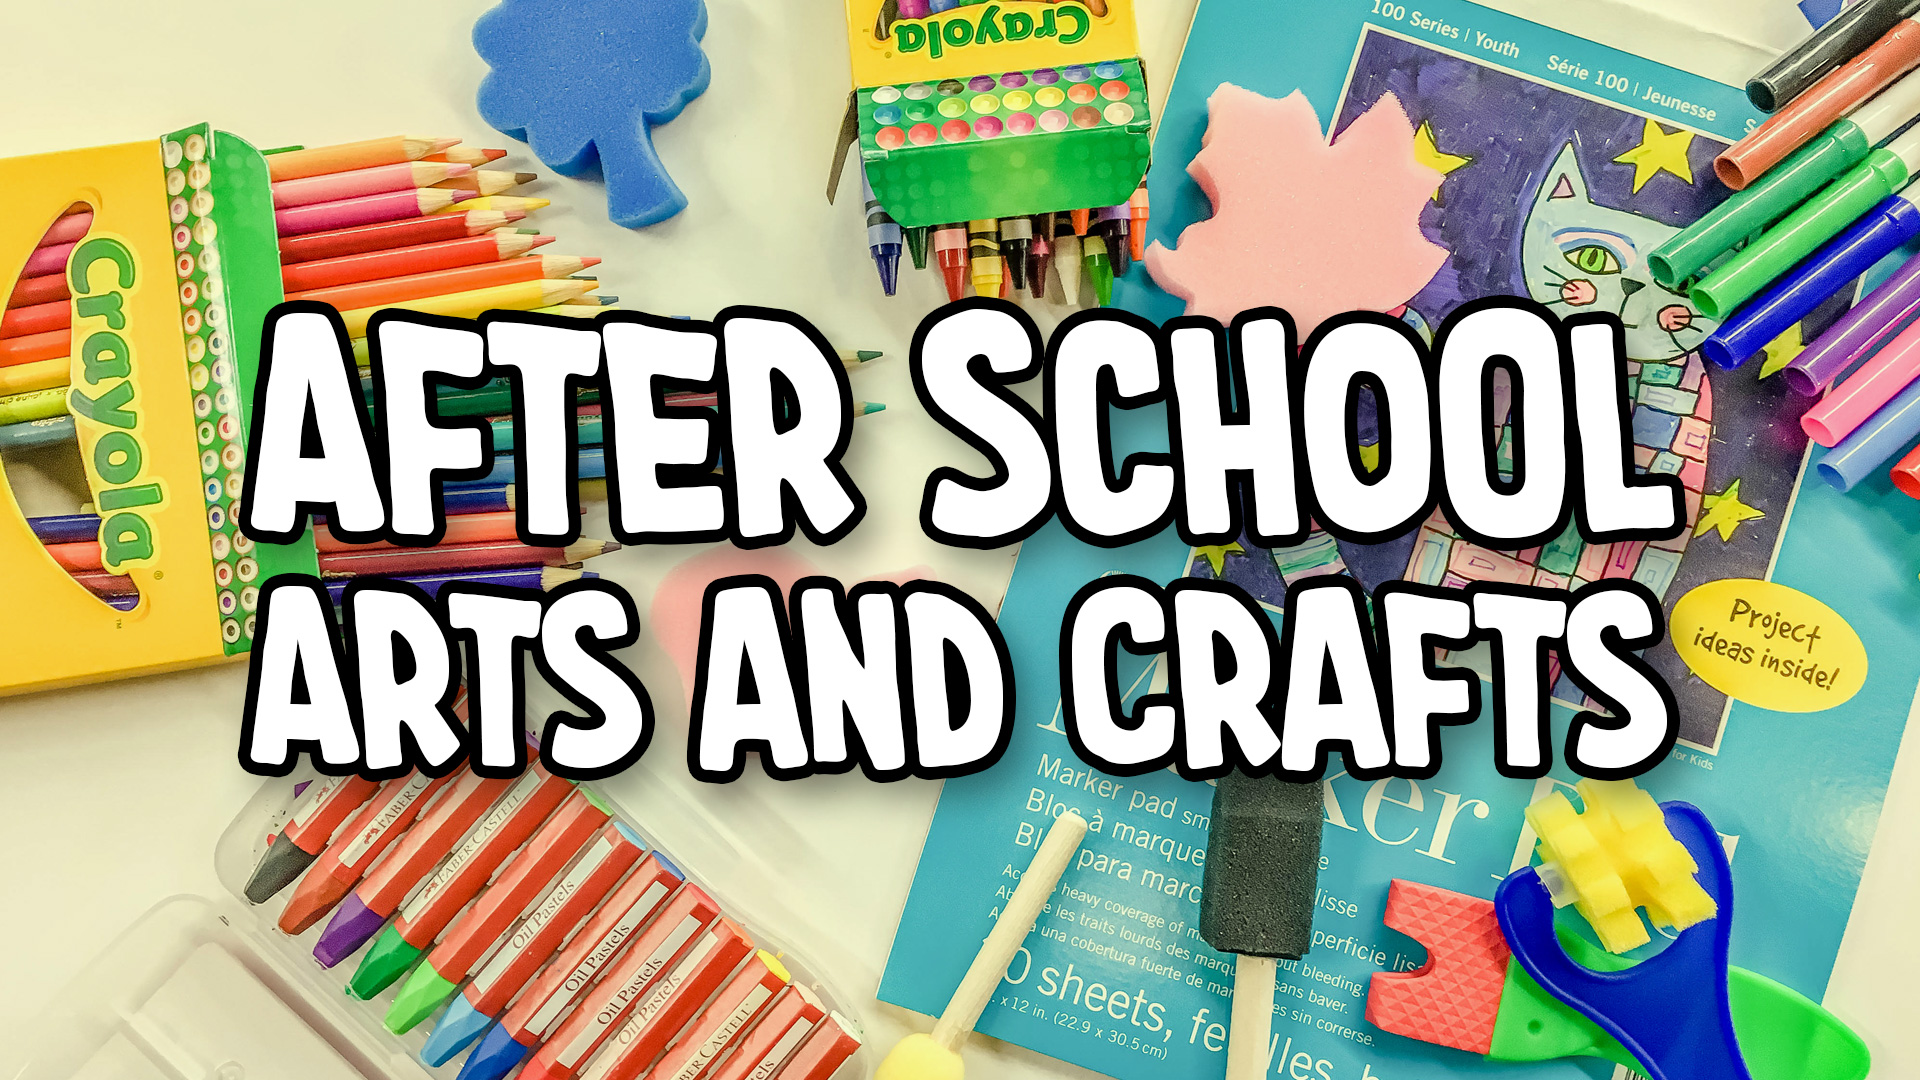 After School Arts And Crafts Kalamazoo Public Library